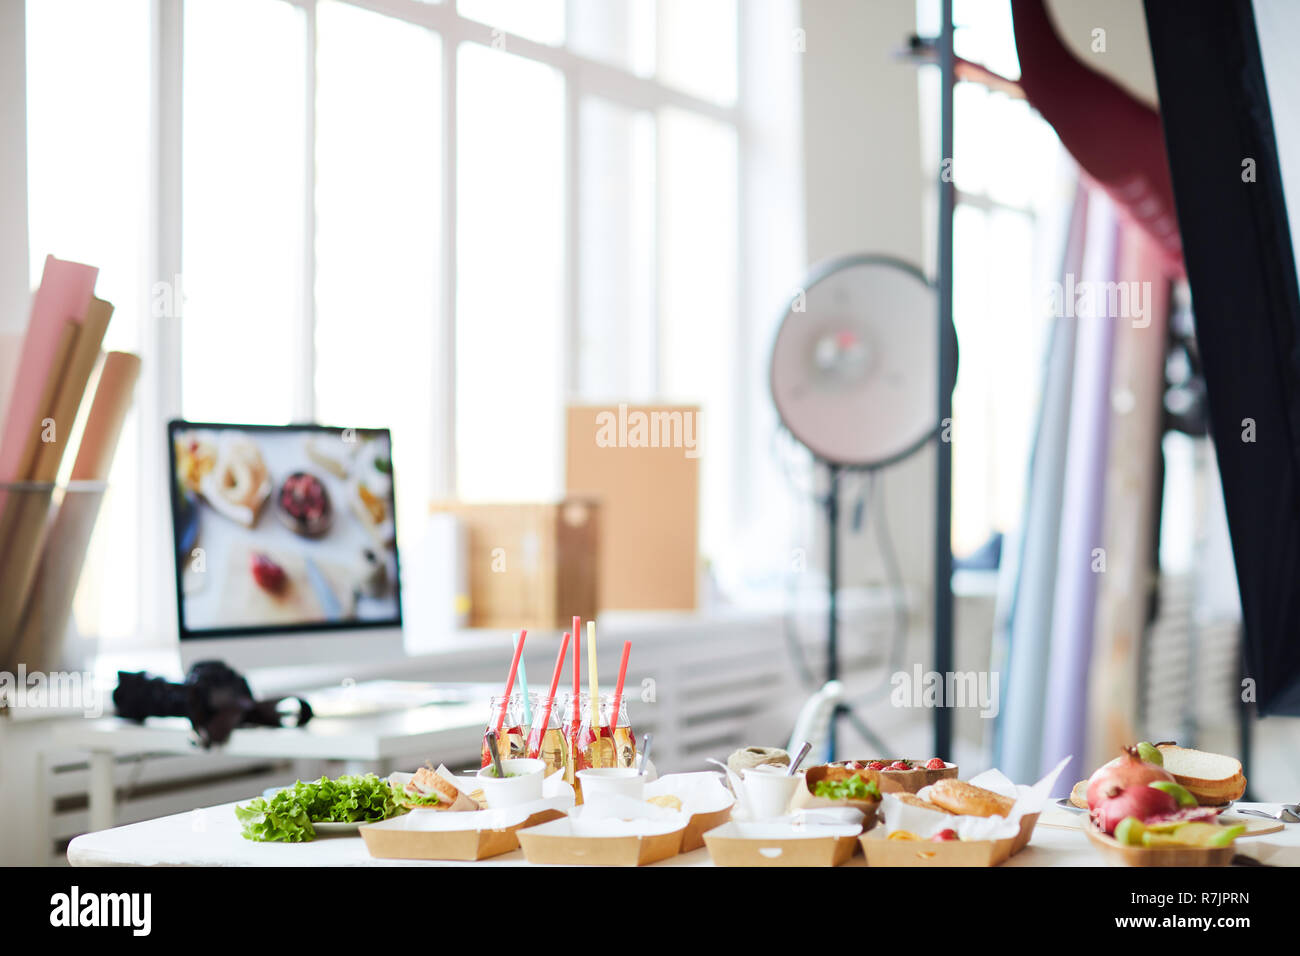 Background image of photo studio with party table with fast food in foreground, copy space Stock Photo